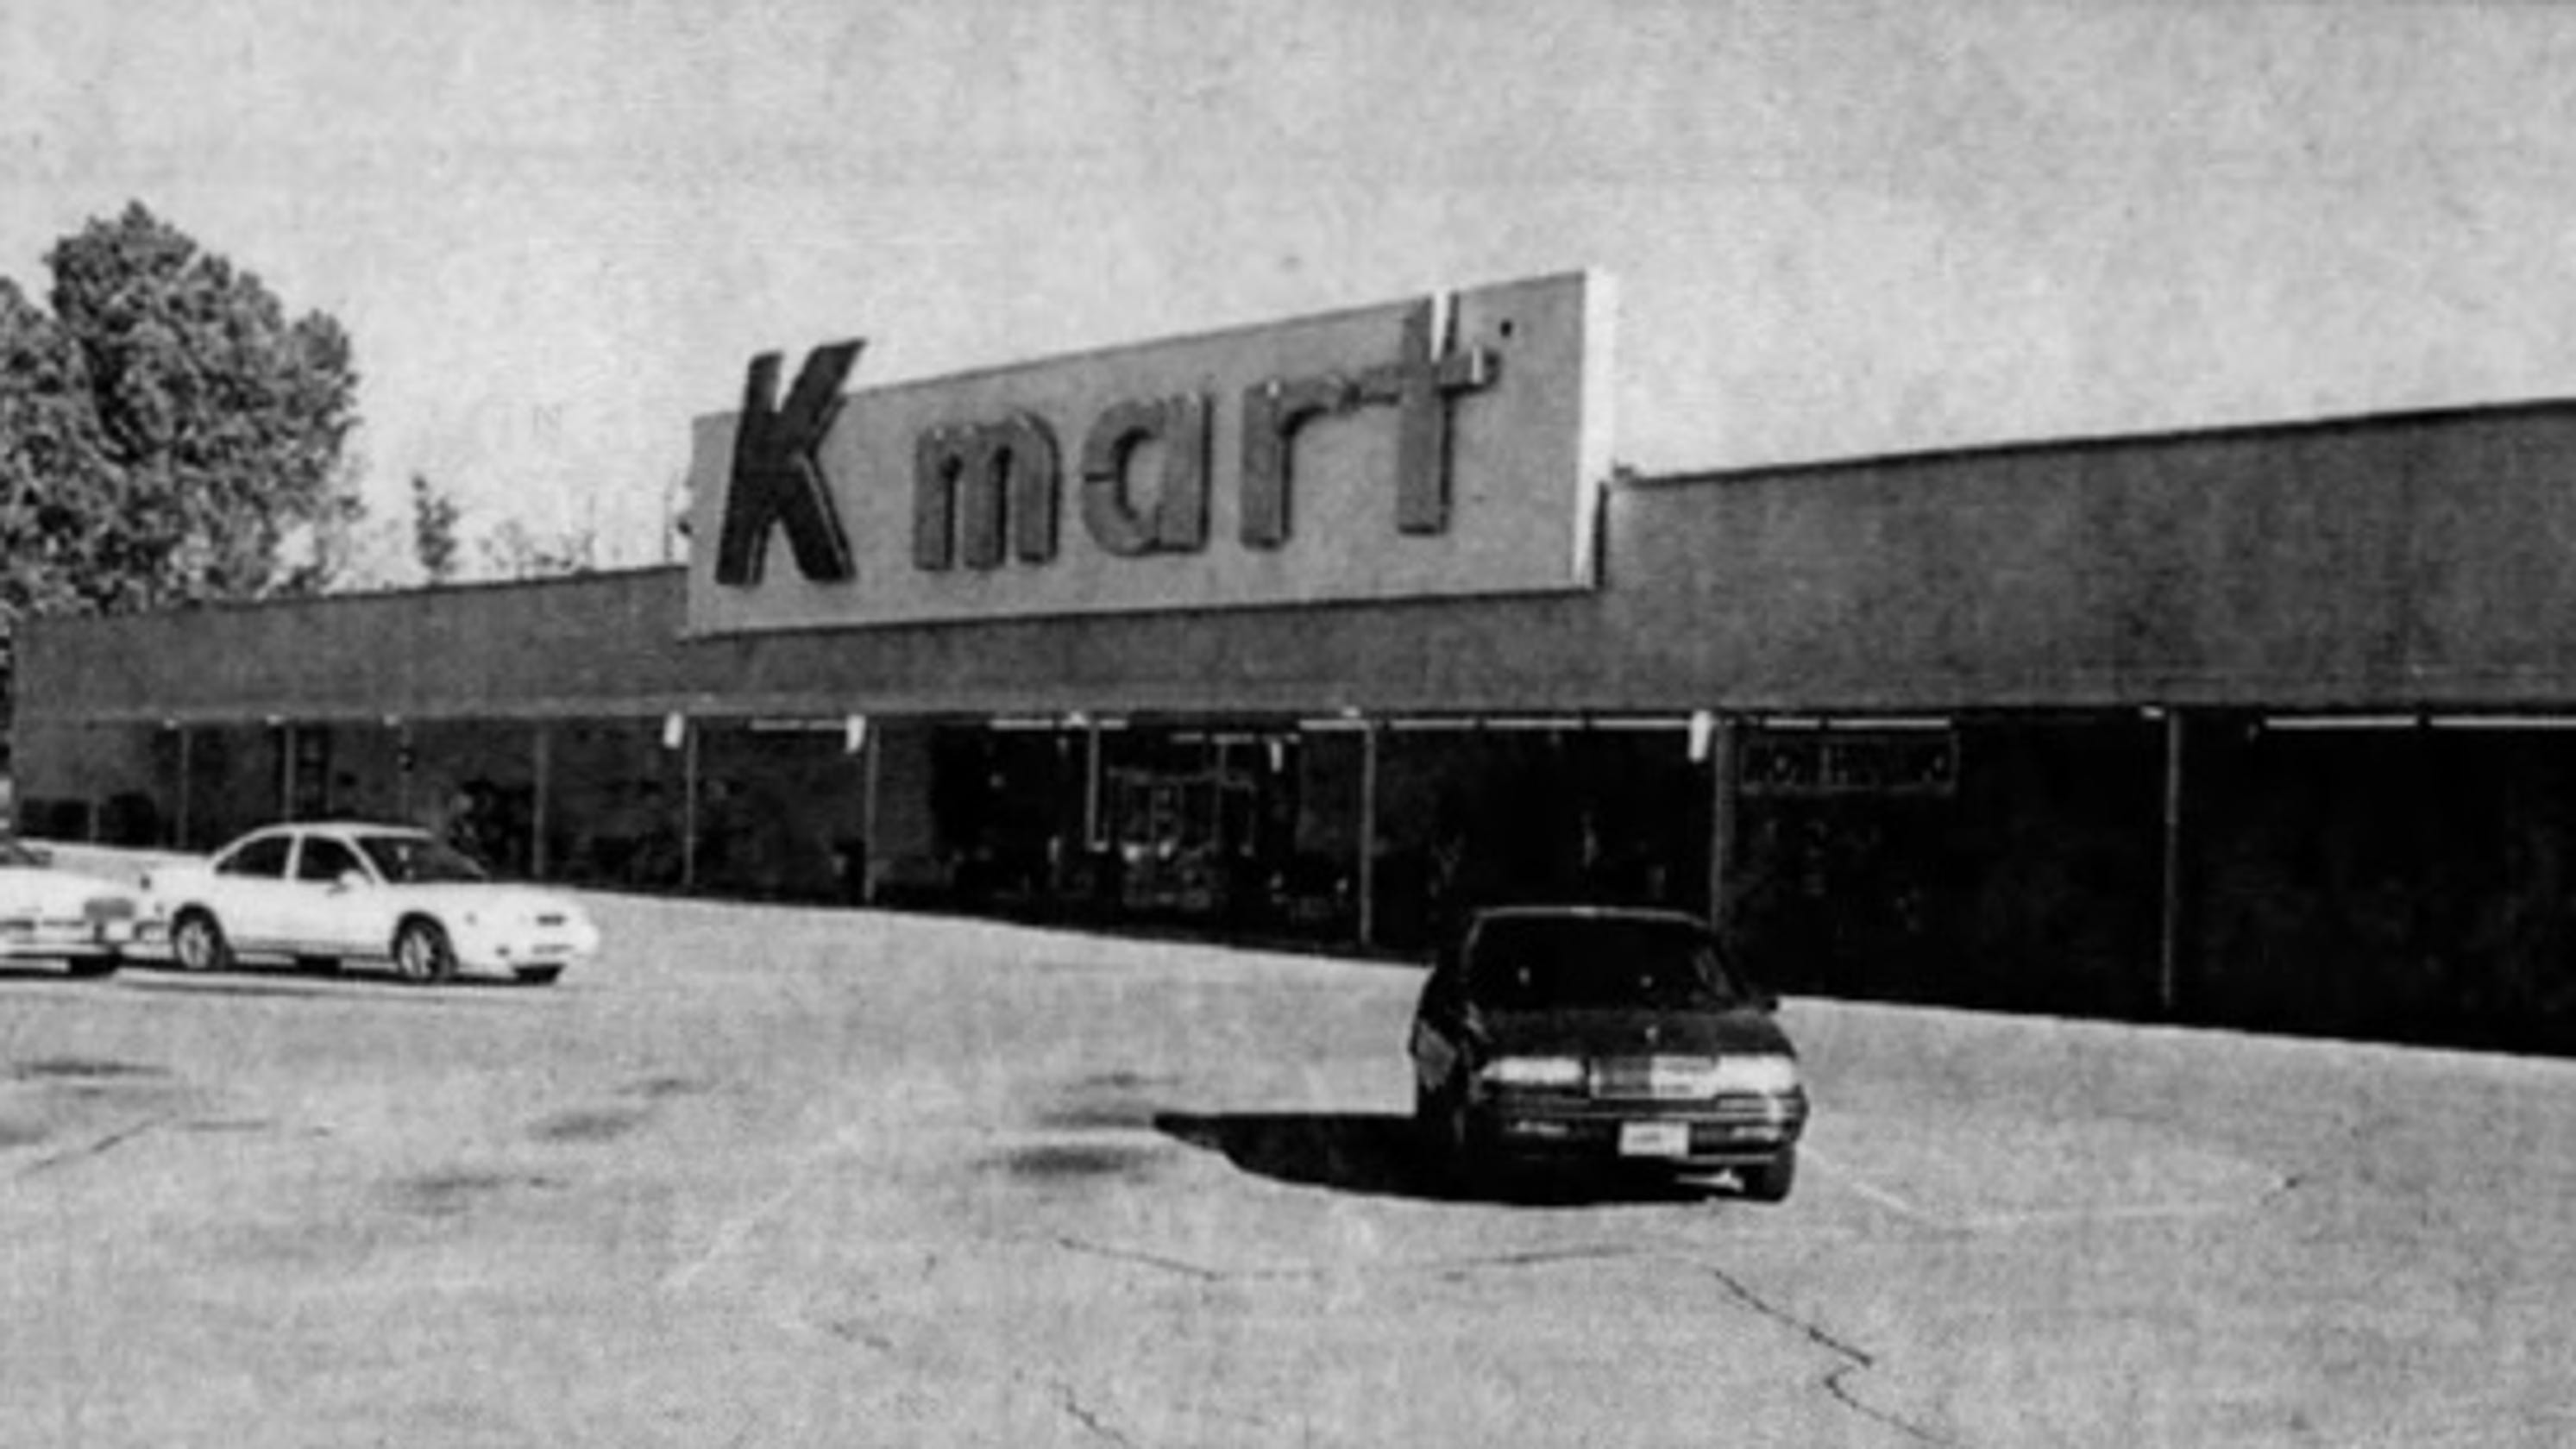 Former Kmart site in Appleton still earmarked for storage units